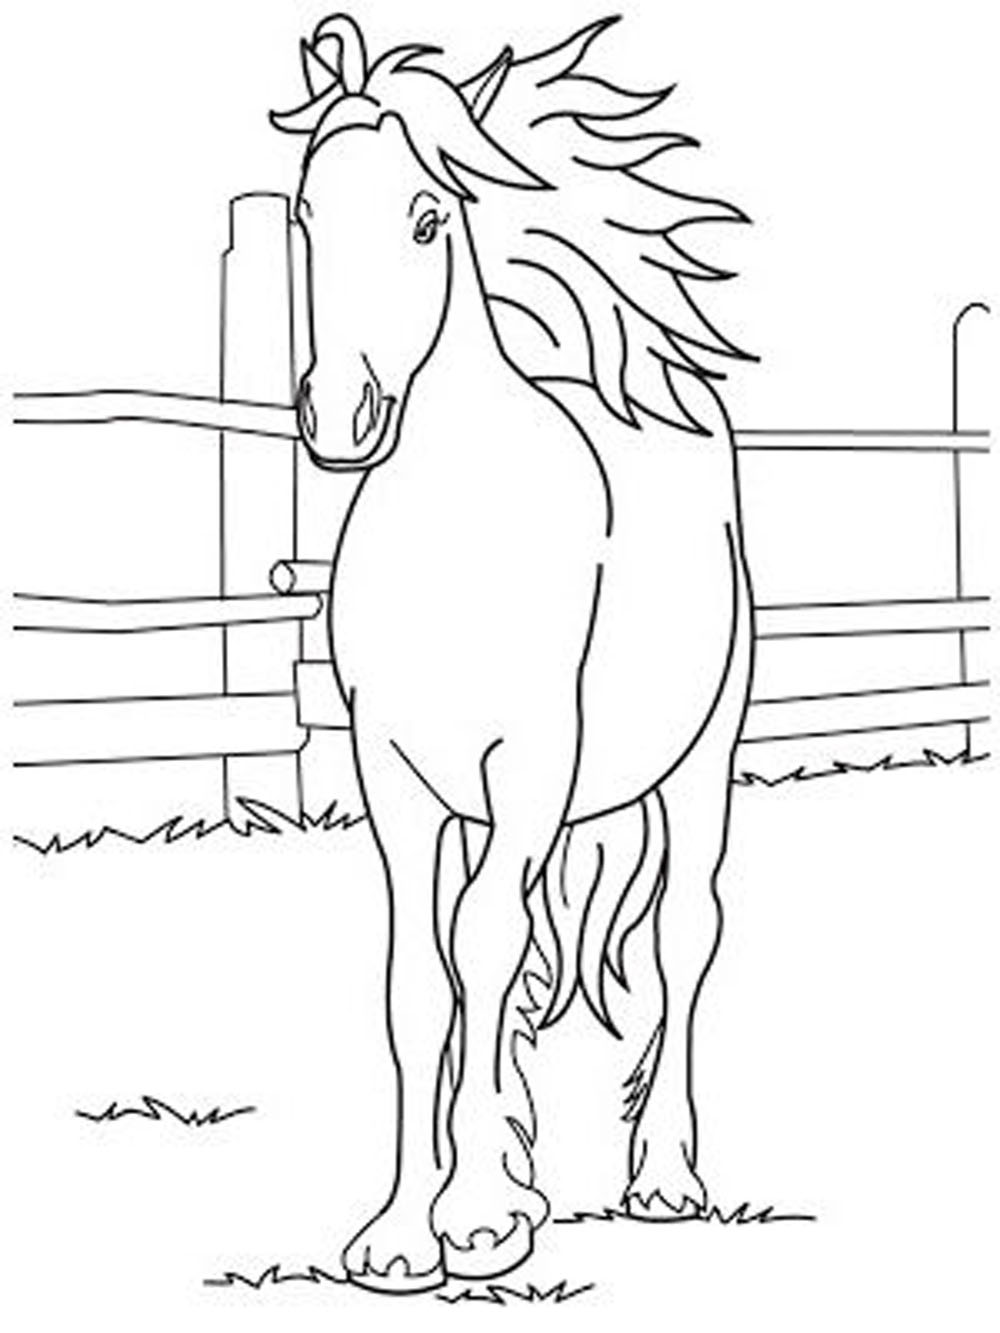 printable horse colouring pages horse coloring pages birthday printable horse pages printable colouring